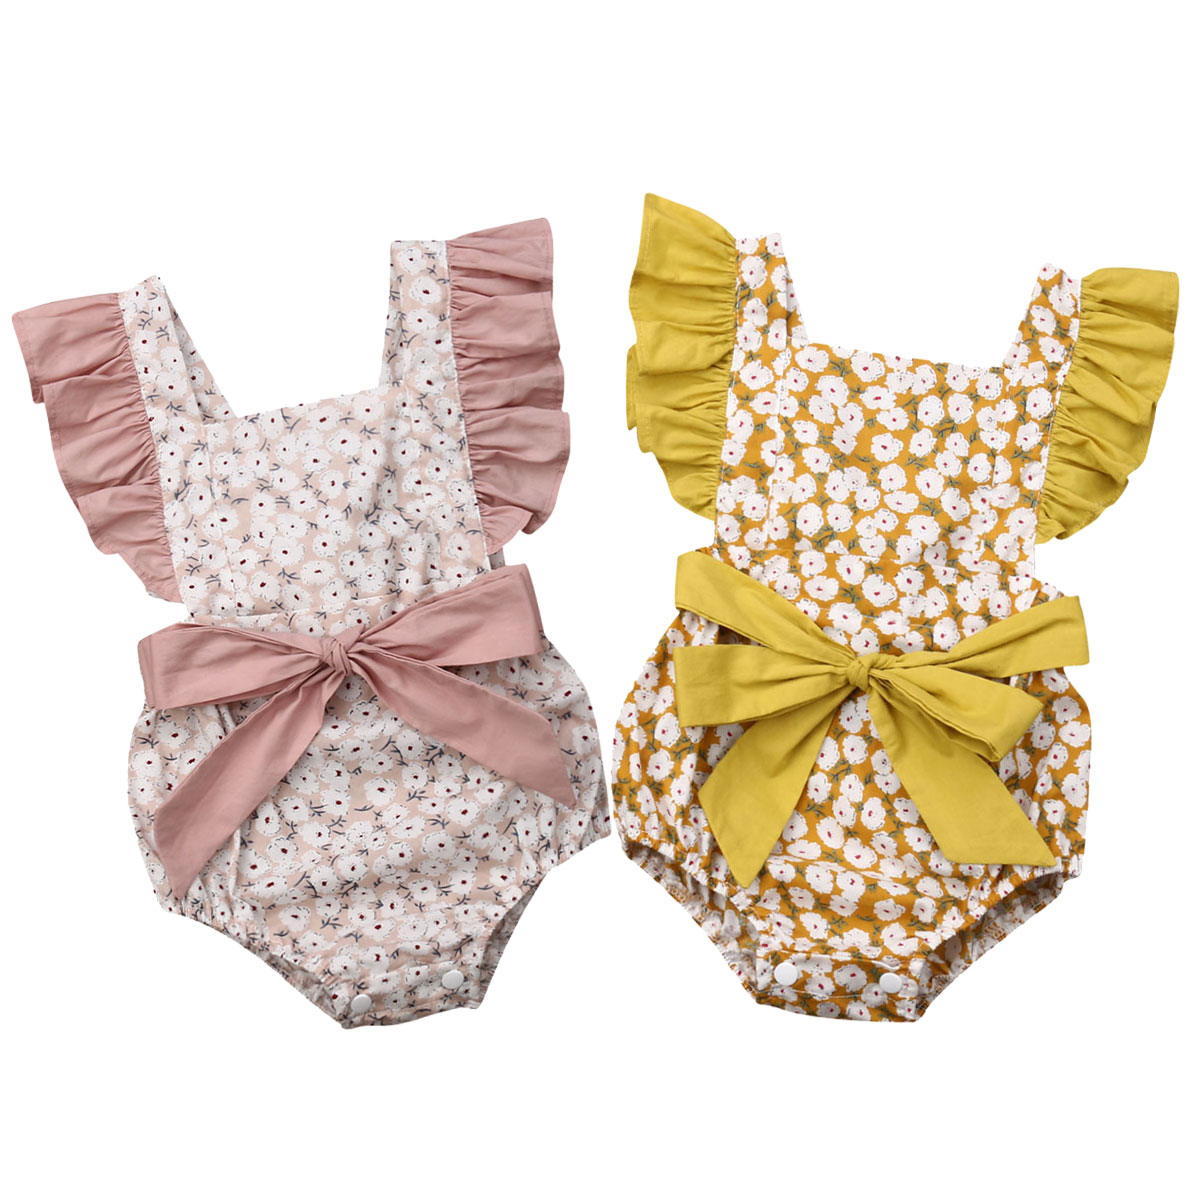 Toddler Baby Girls Ruffles Romper Infant Newborn Baby Bow Jumpsuit Summer Flower Baby Girls Clothes Baby Costumes